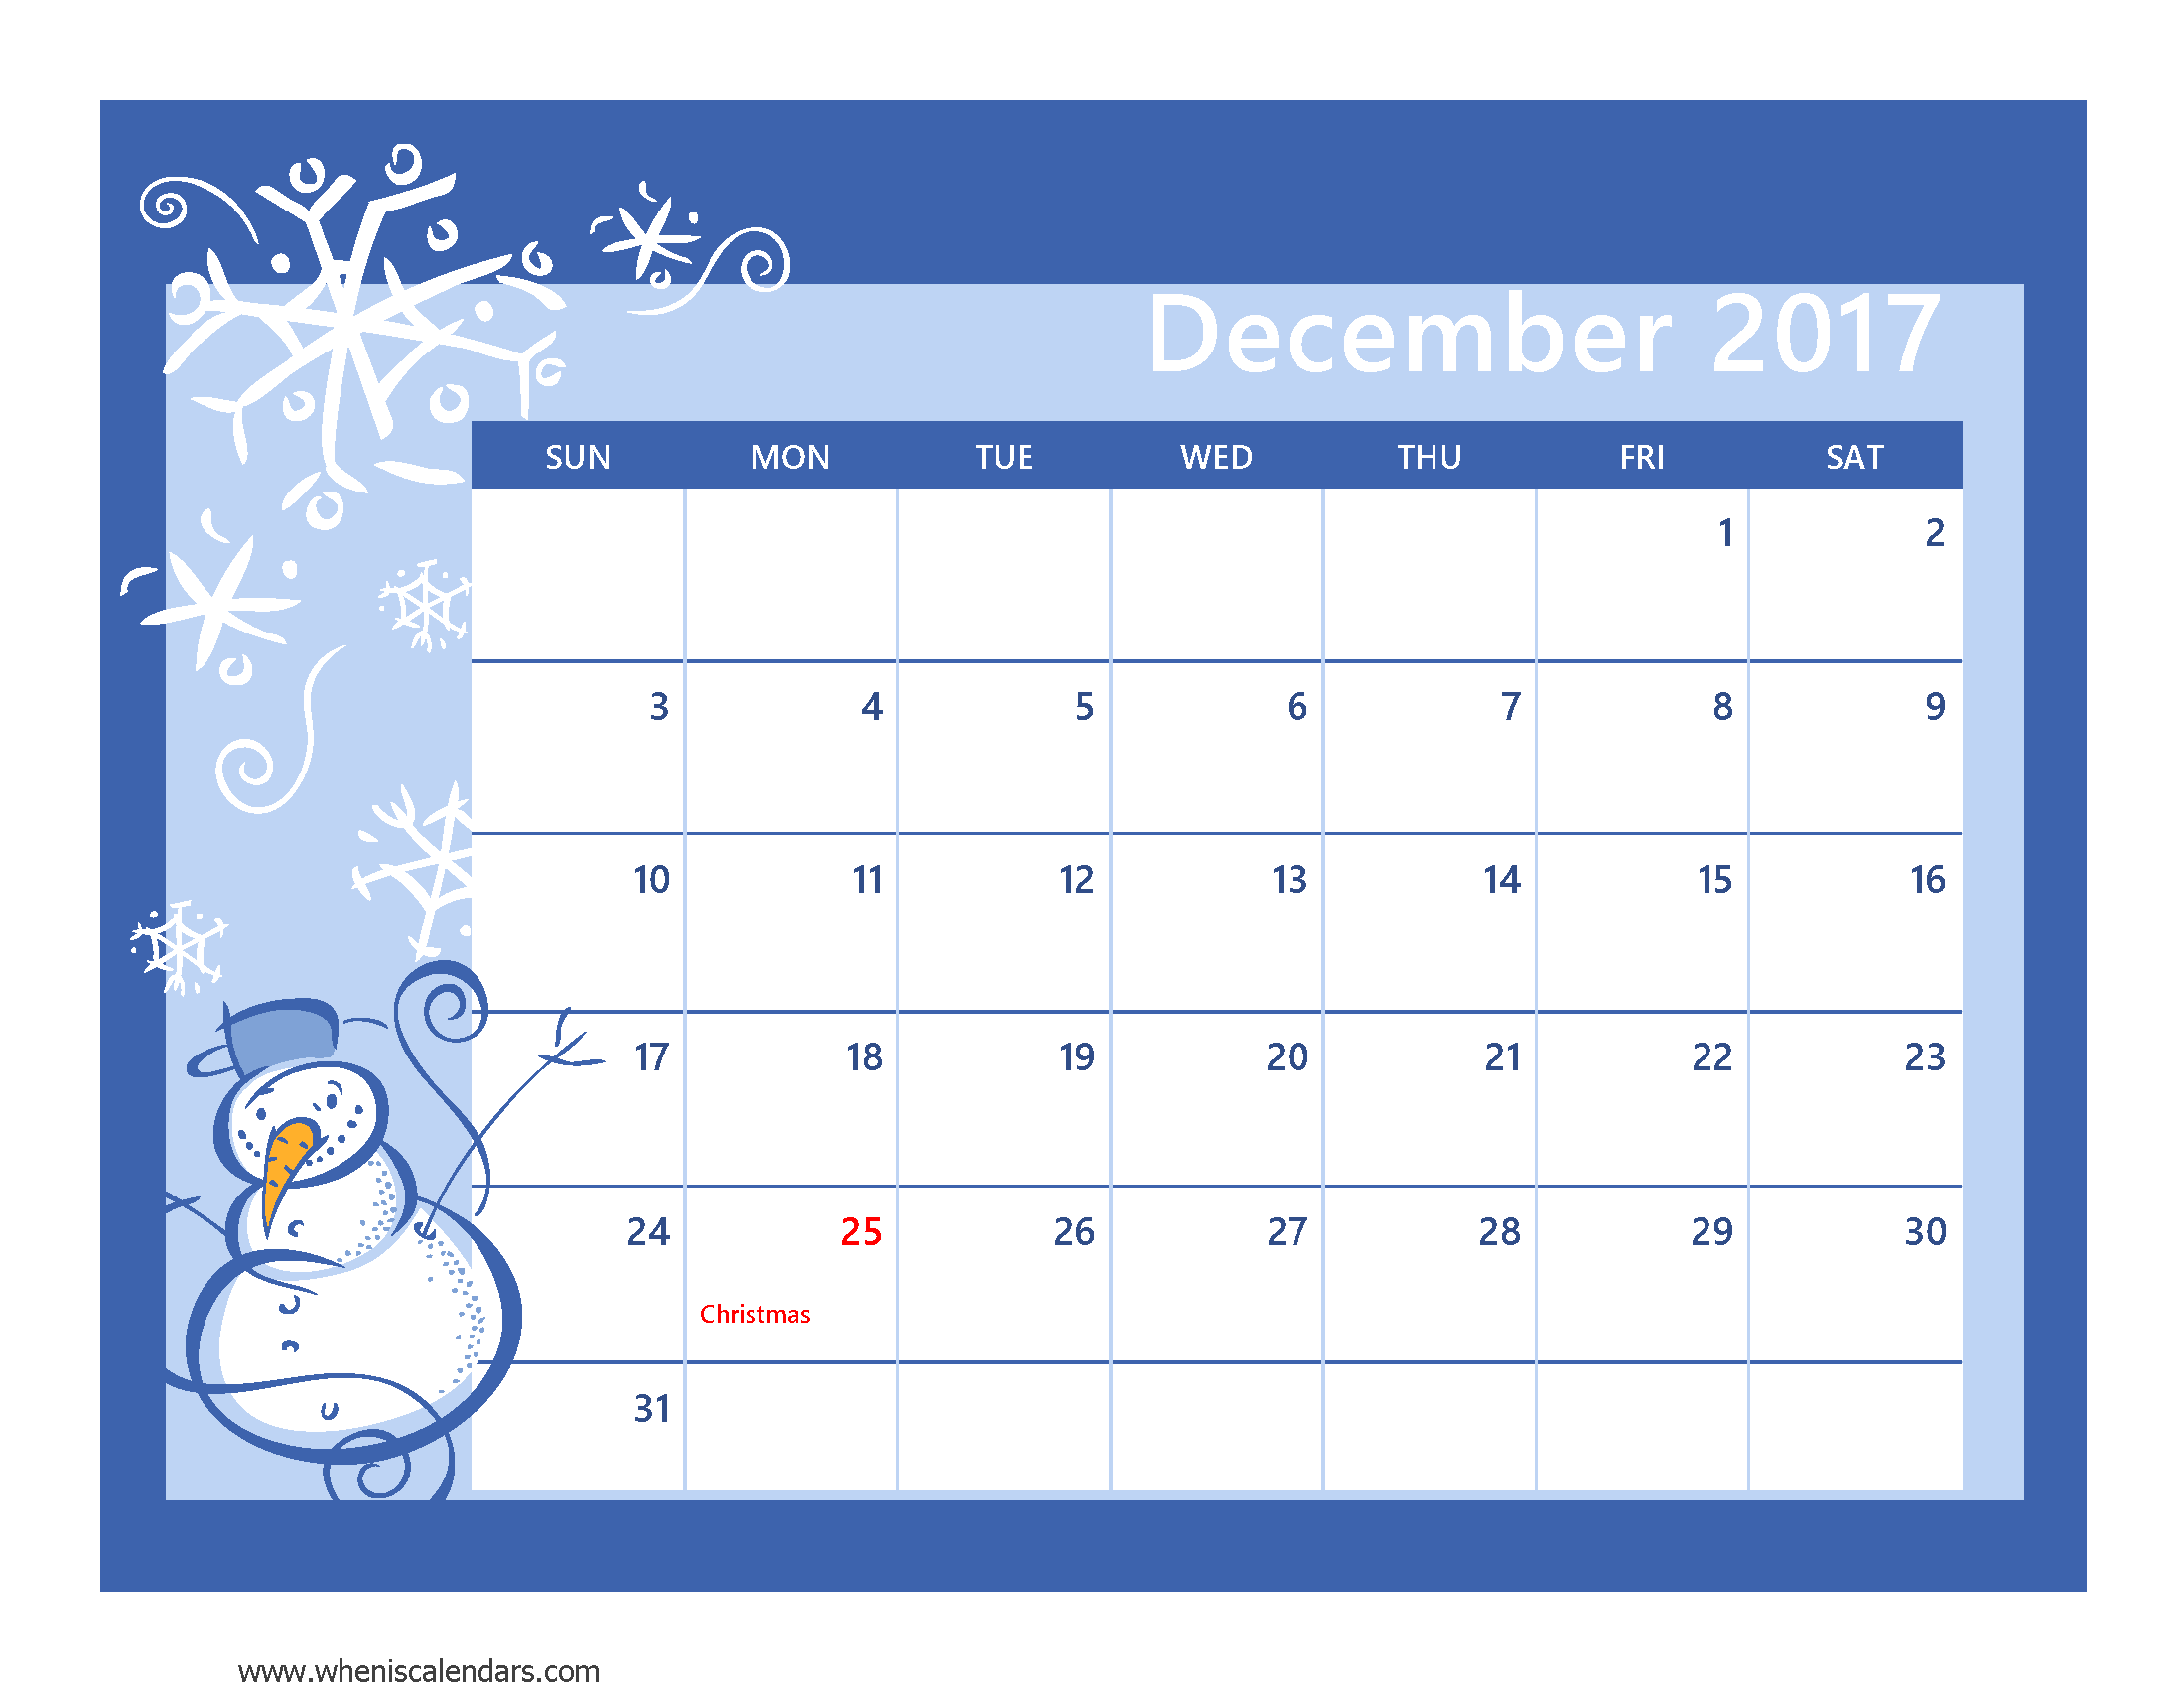 printable December 2017 when is calendars - Yahoo Image Search ...